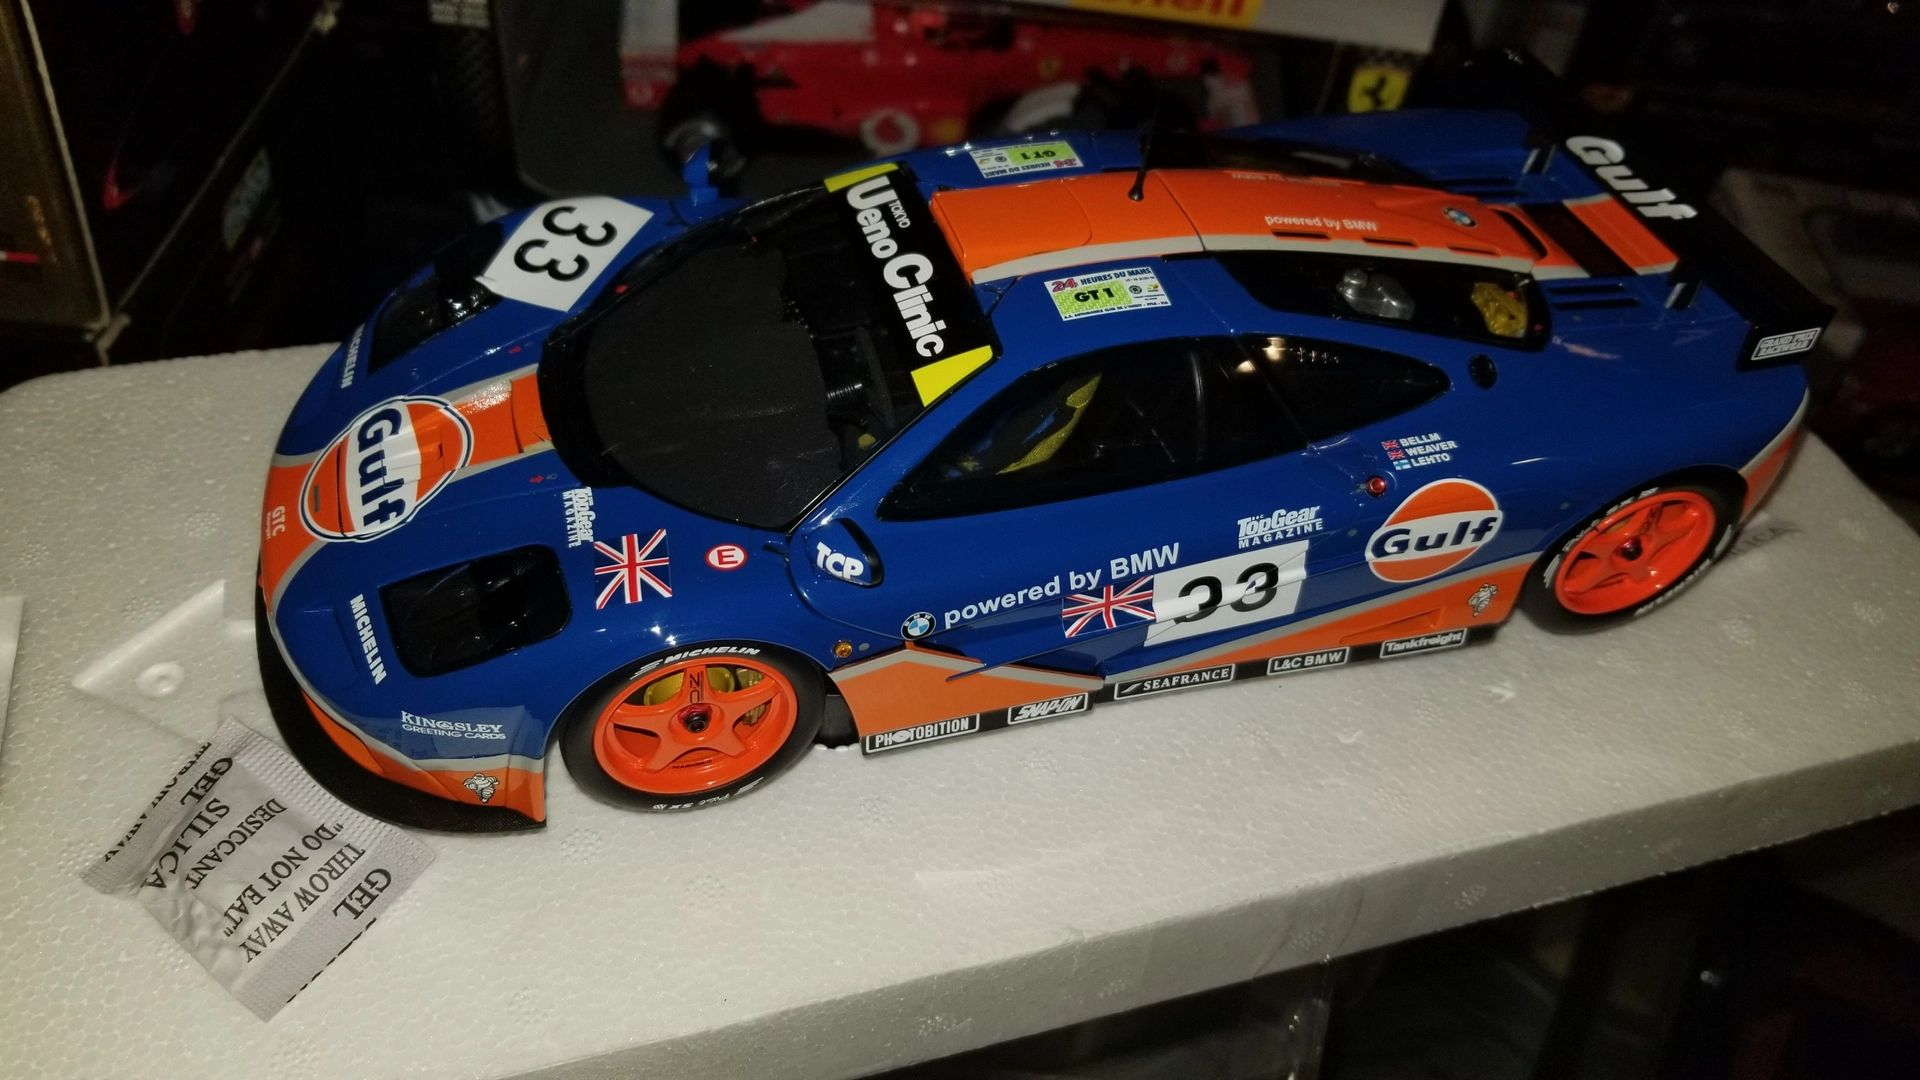 "{""blocks"":[{""key"":""8slf3"",""text"":"" 1/18 Minichamps McLaren F1 GTR #33 GULF Racing (Limited production Run 304 Pieces World wide) "",""type"":""unstyled"",""depth"":0,""inlineStyleRanges"":[],""entityRanges"":[],""data"":{}}],""entityMap"":{}}"